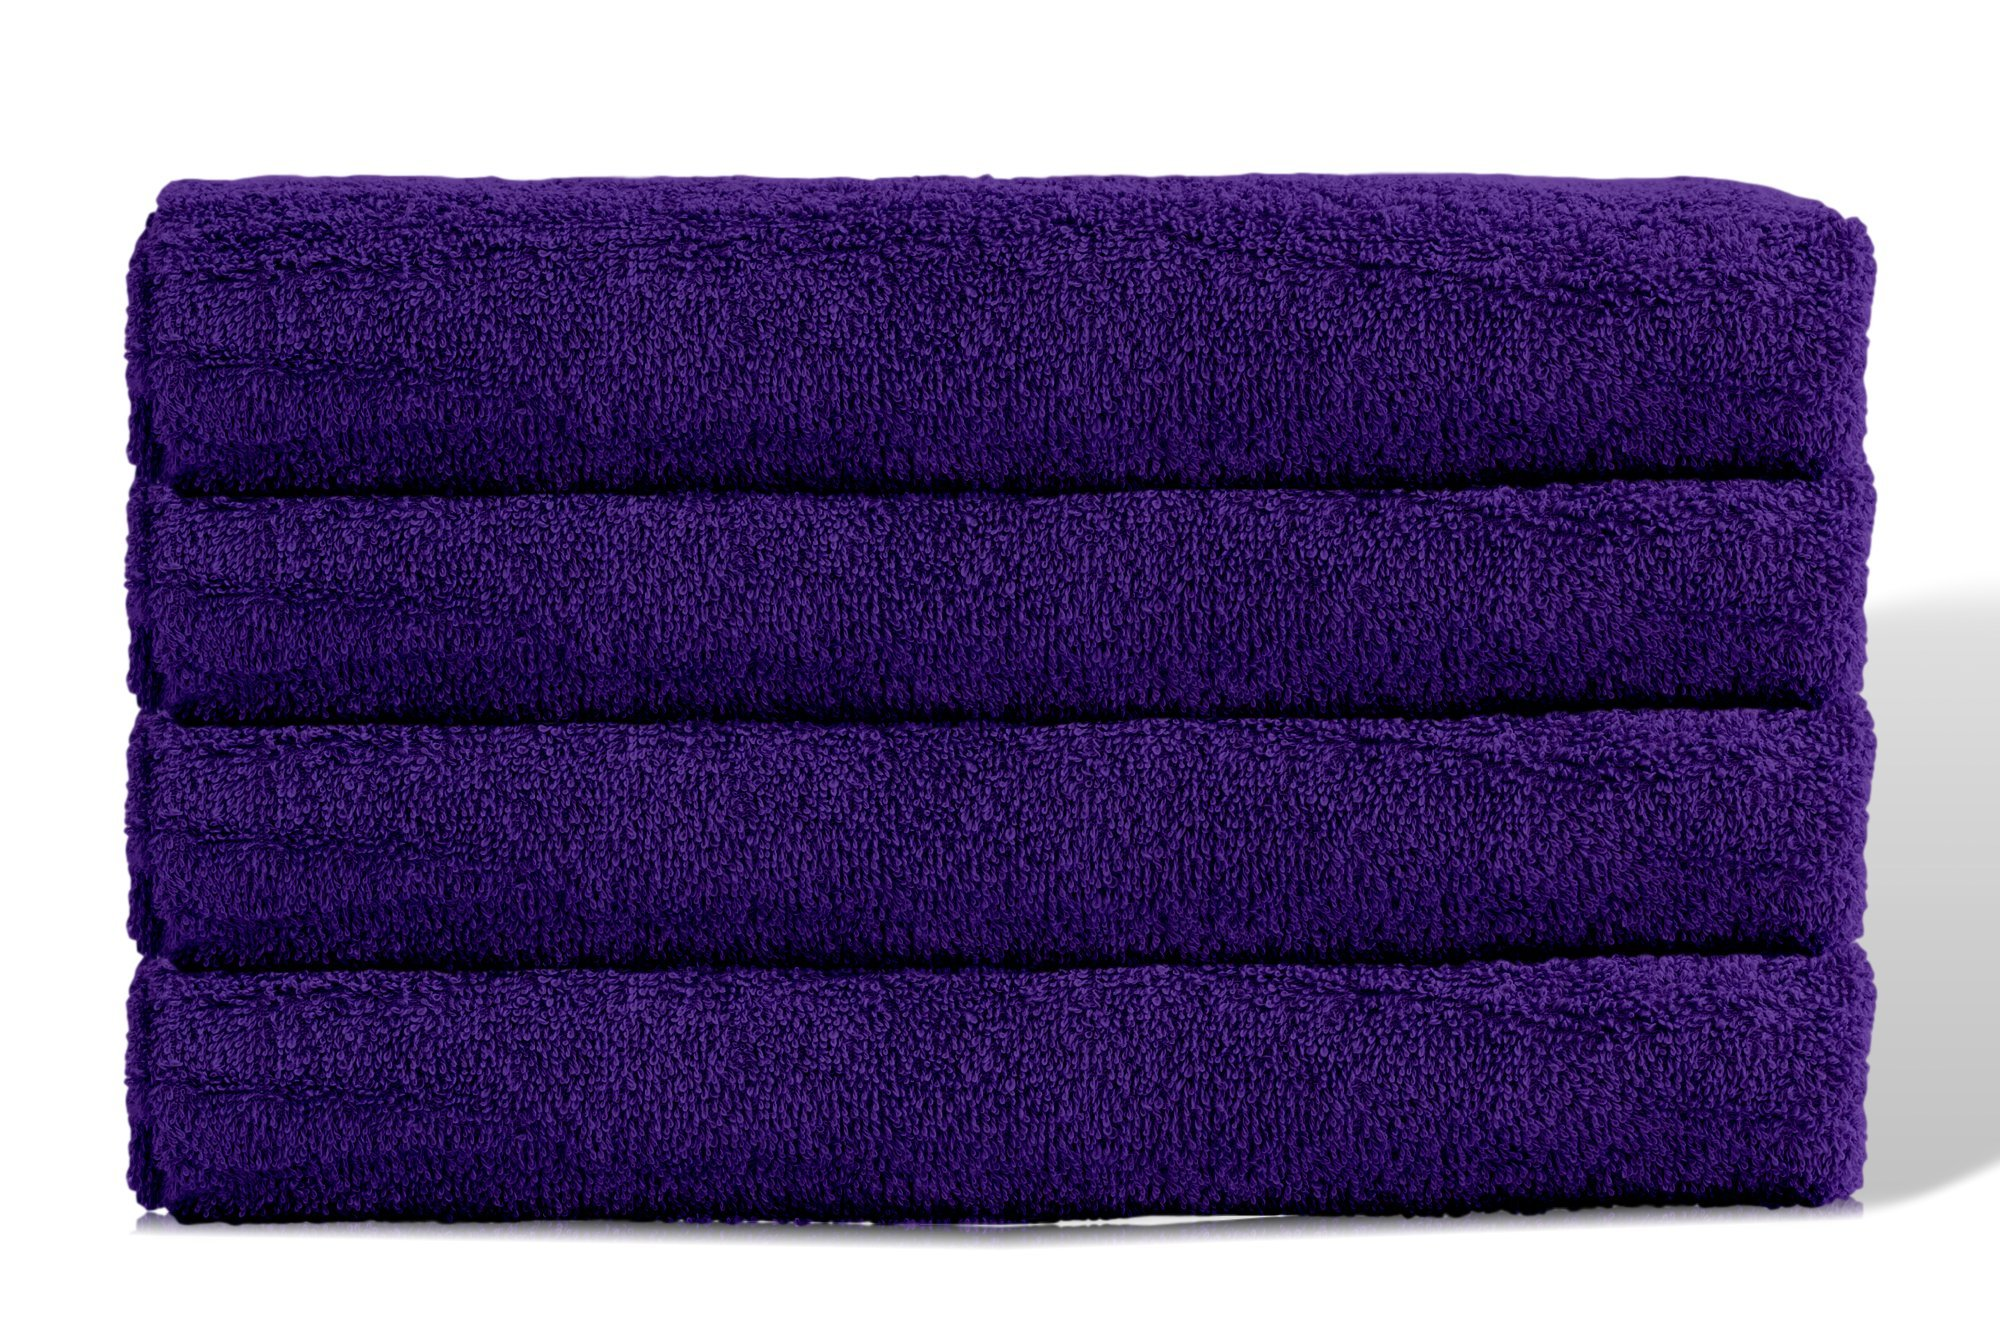 Puffy Cotton Large Bath Towel - 4 Pack Set - Oversize Bath Sheet (Hotel, Spa, Bath) Super Soft and Observant (Purple)